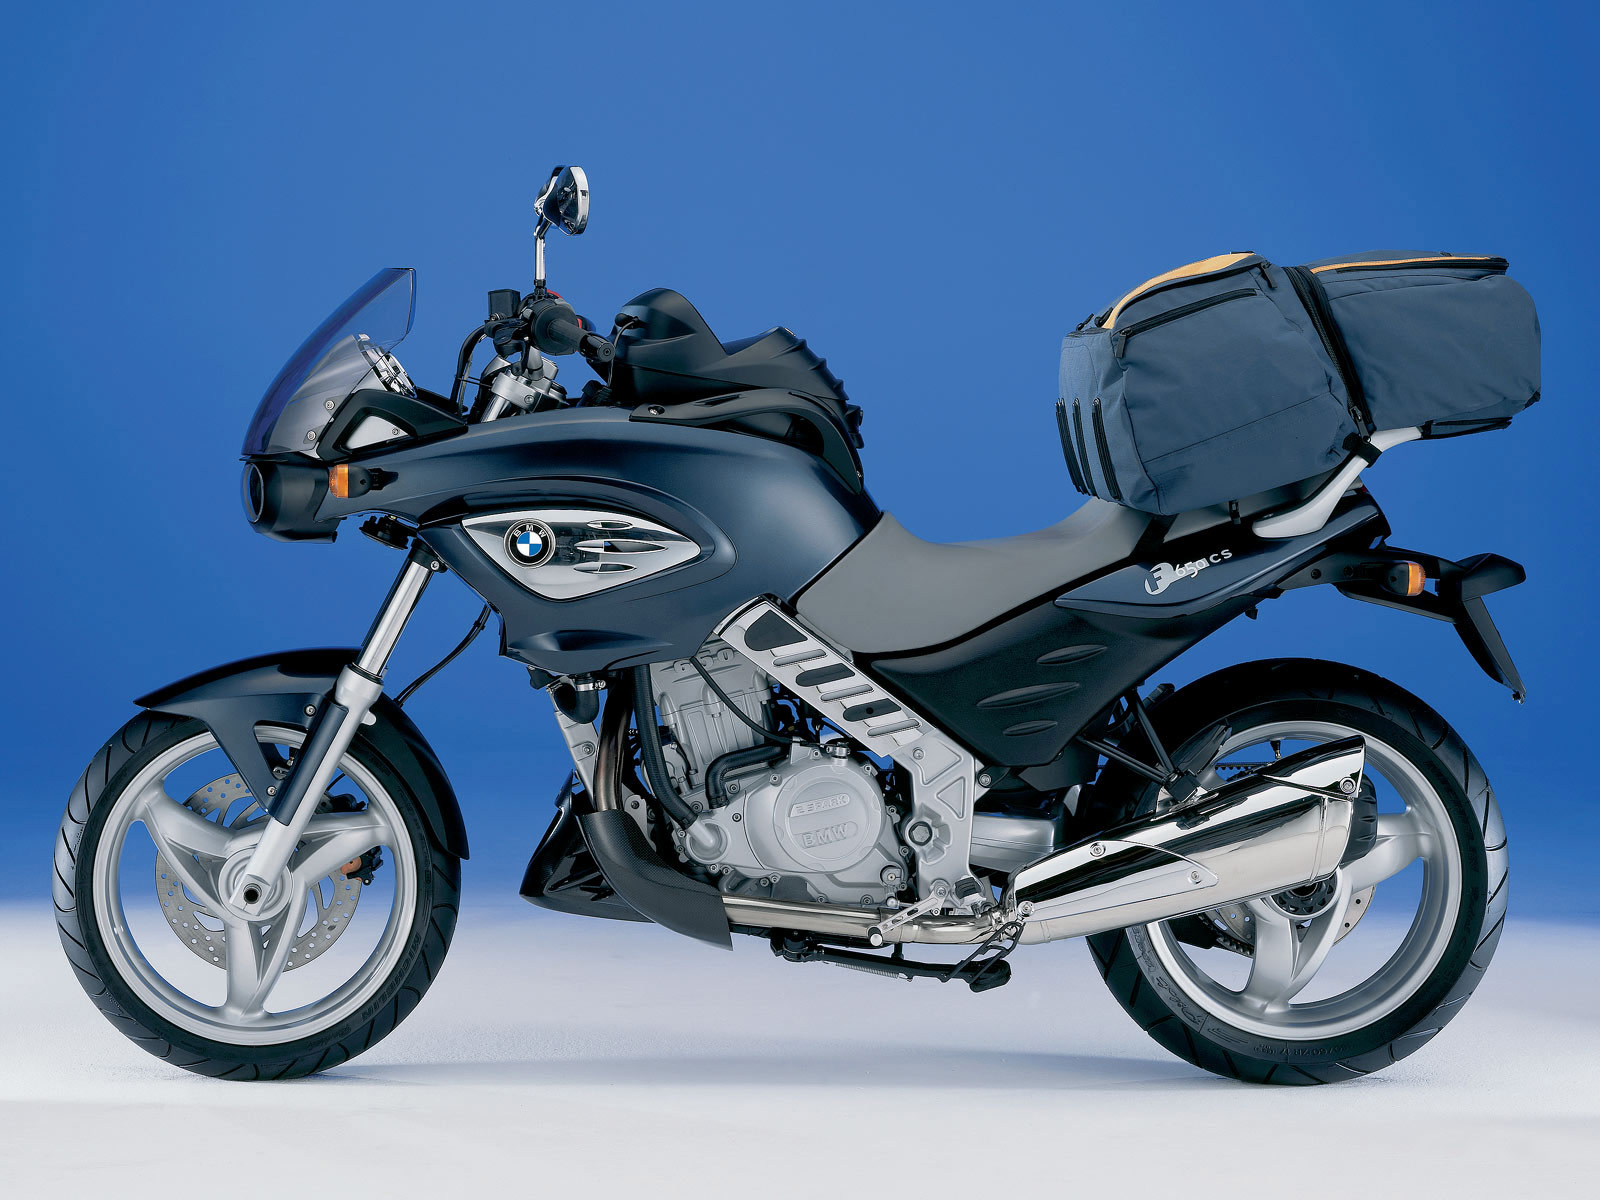 2004 bmw f 650 cs motorcycle wallpapers accident lawyers. Black Bedroom Furniture Sets. Home Design Ideas